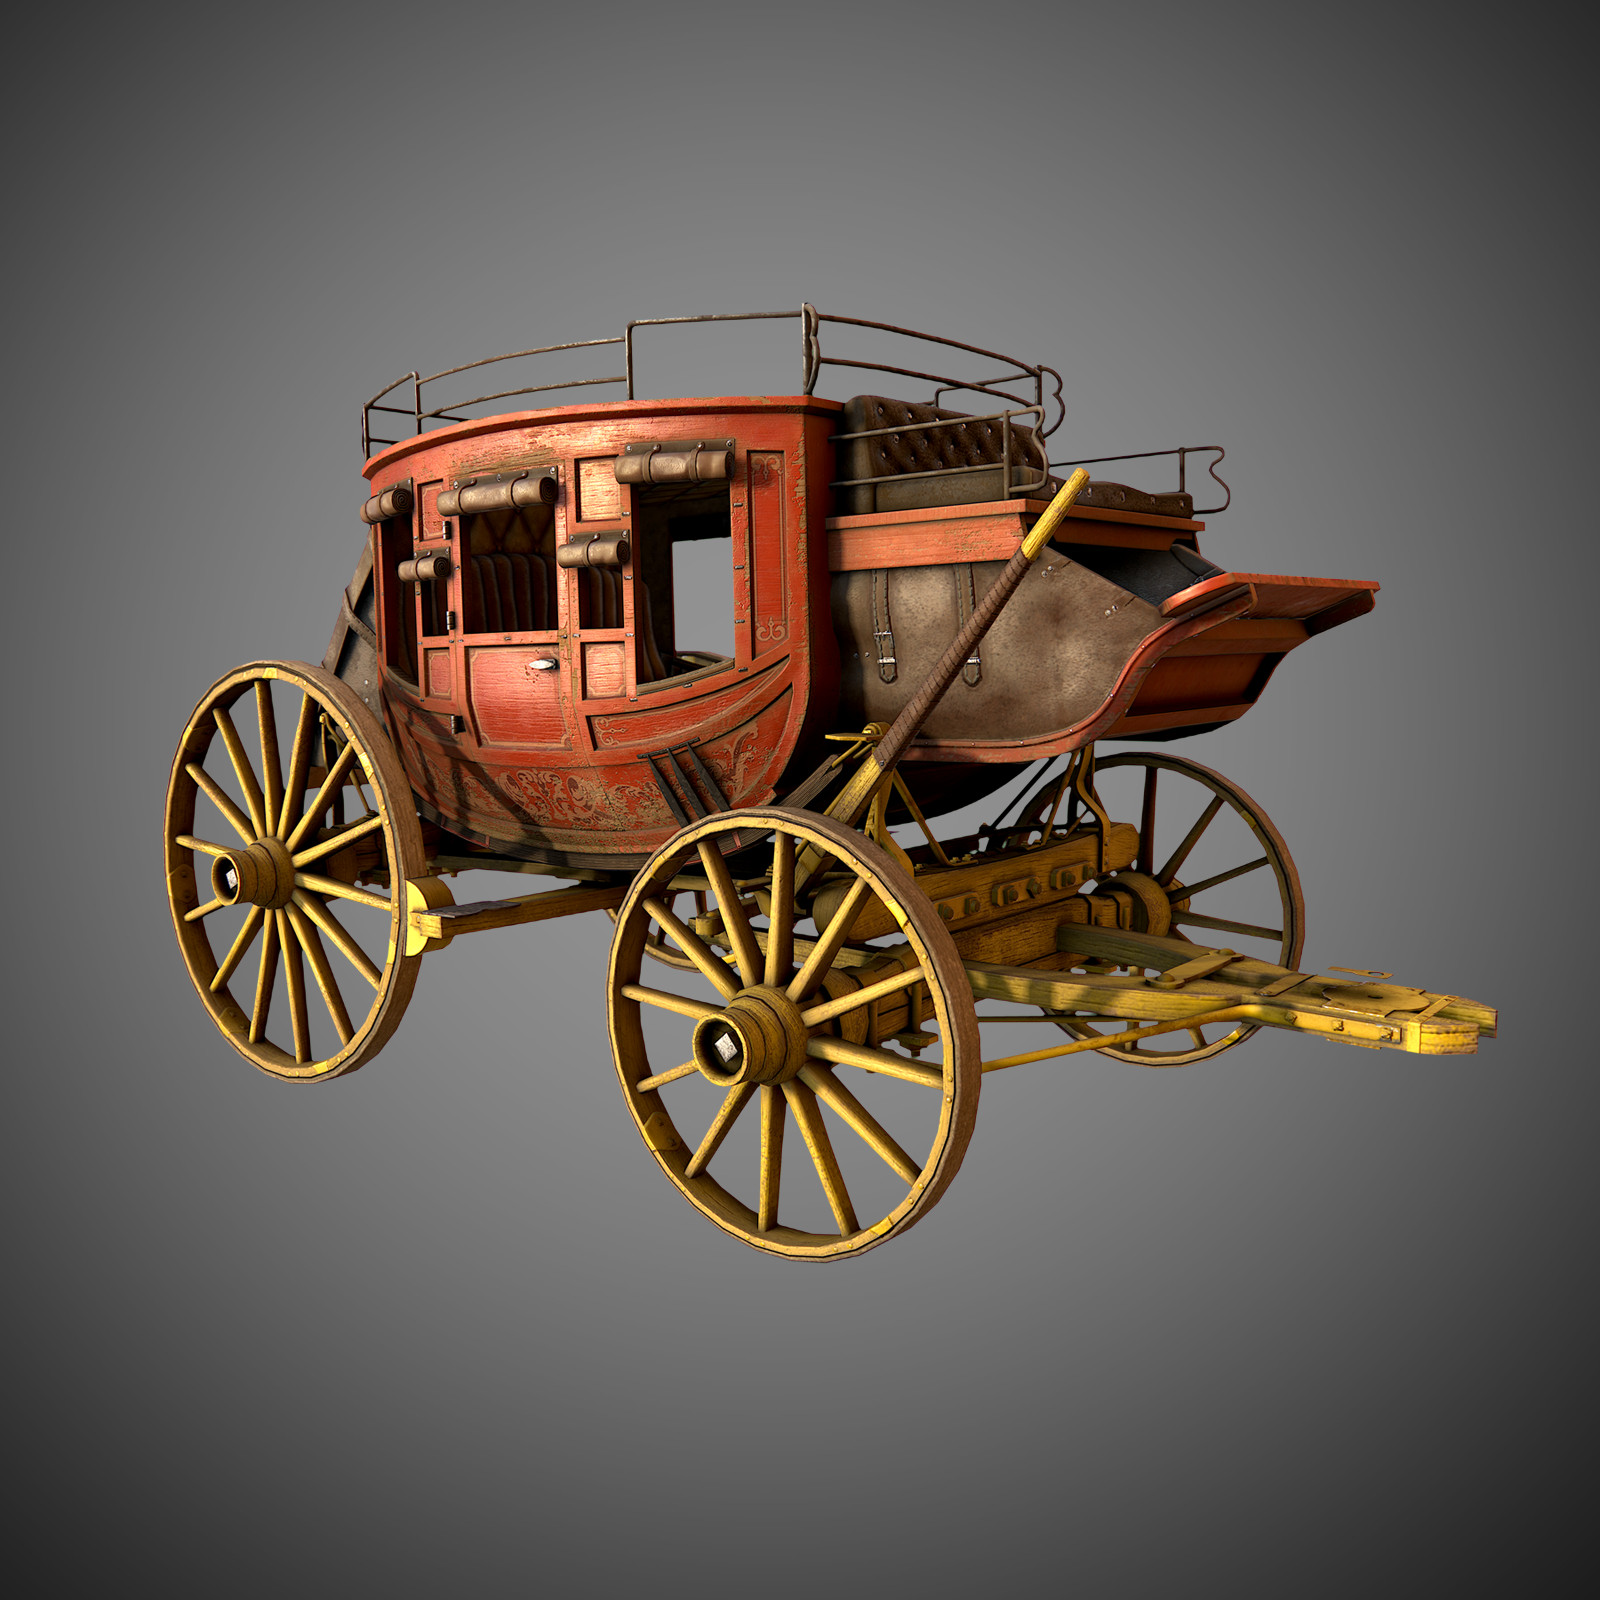 Paul fish stagecoach render 01